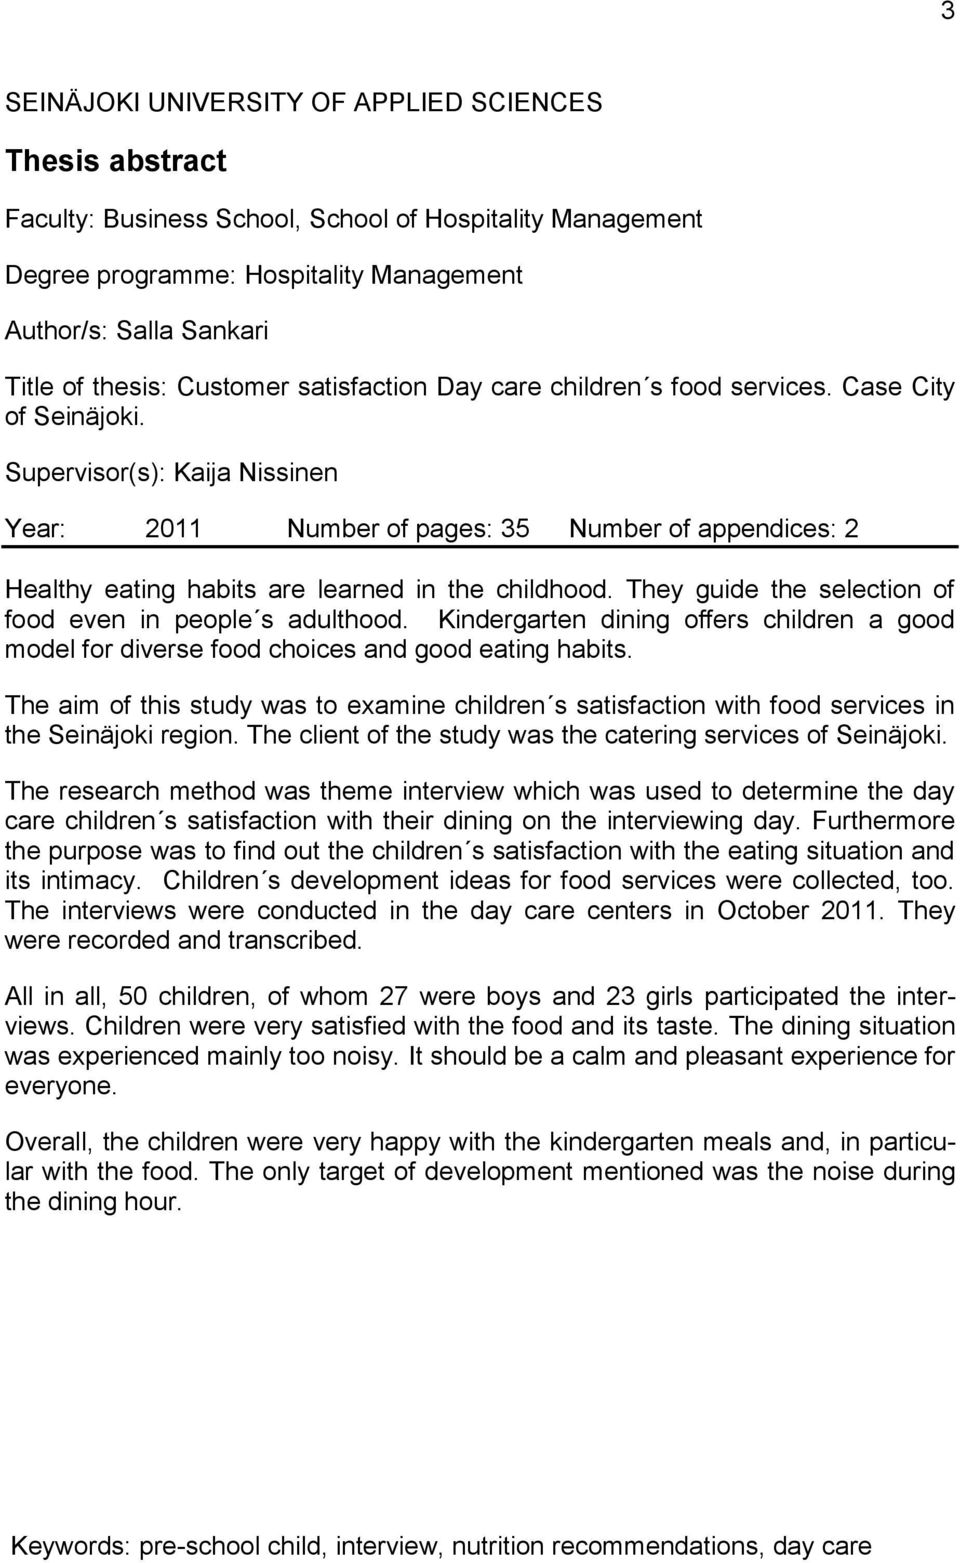 Supervisor(s): Kaija Nissinen Year: 2011 Number of pages: 35 Number of appendices: 2 Healthy eating habits are learned in the childhood. They guide the selection of food even in people s adulthood.